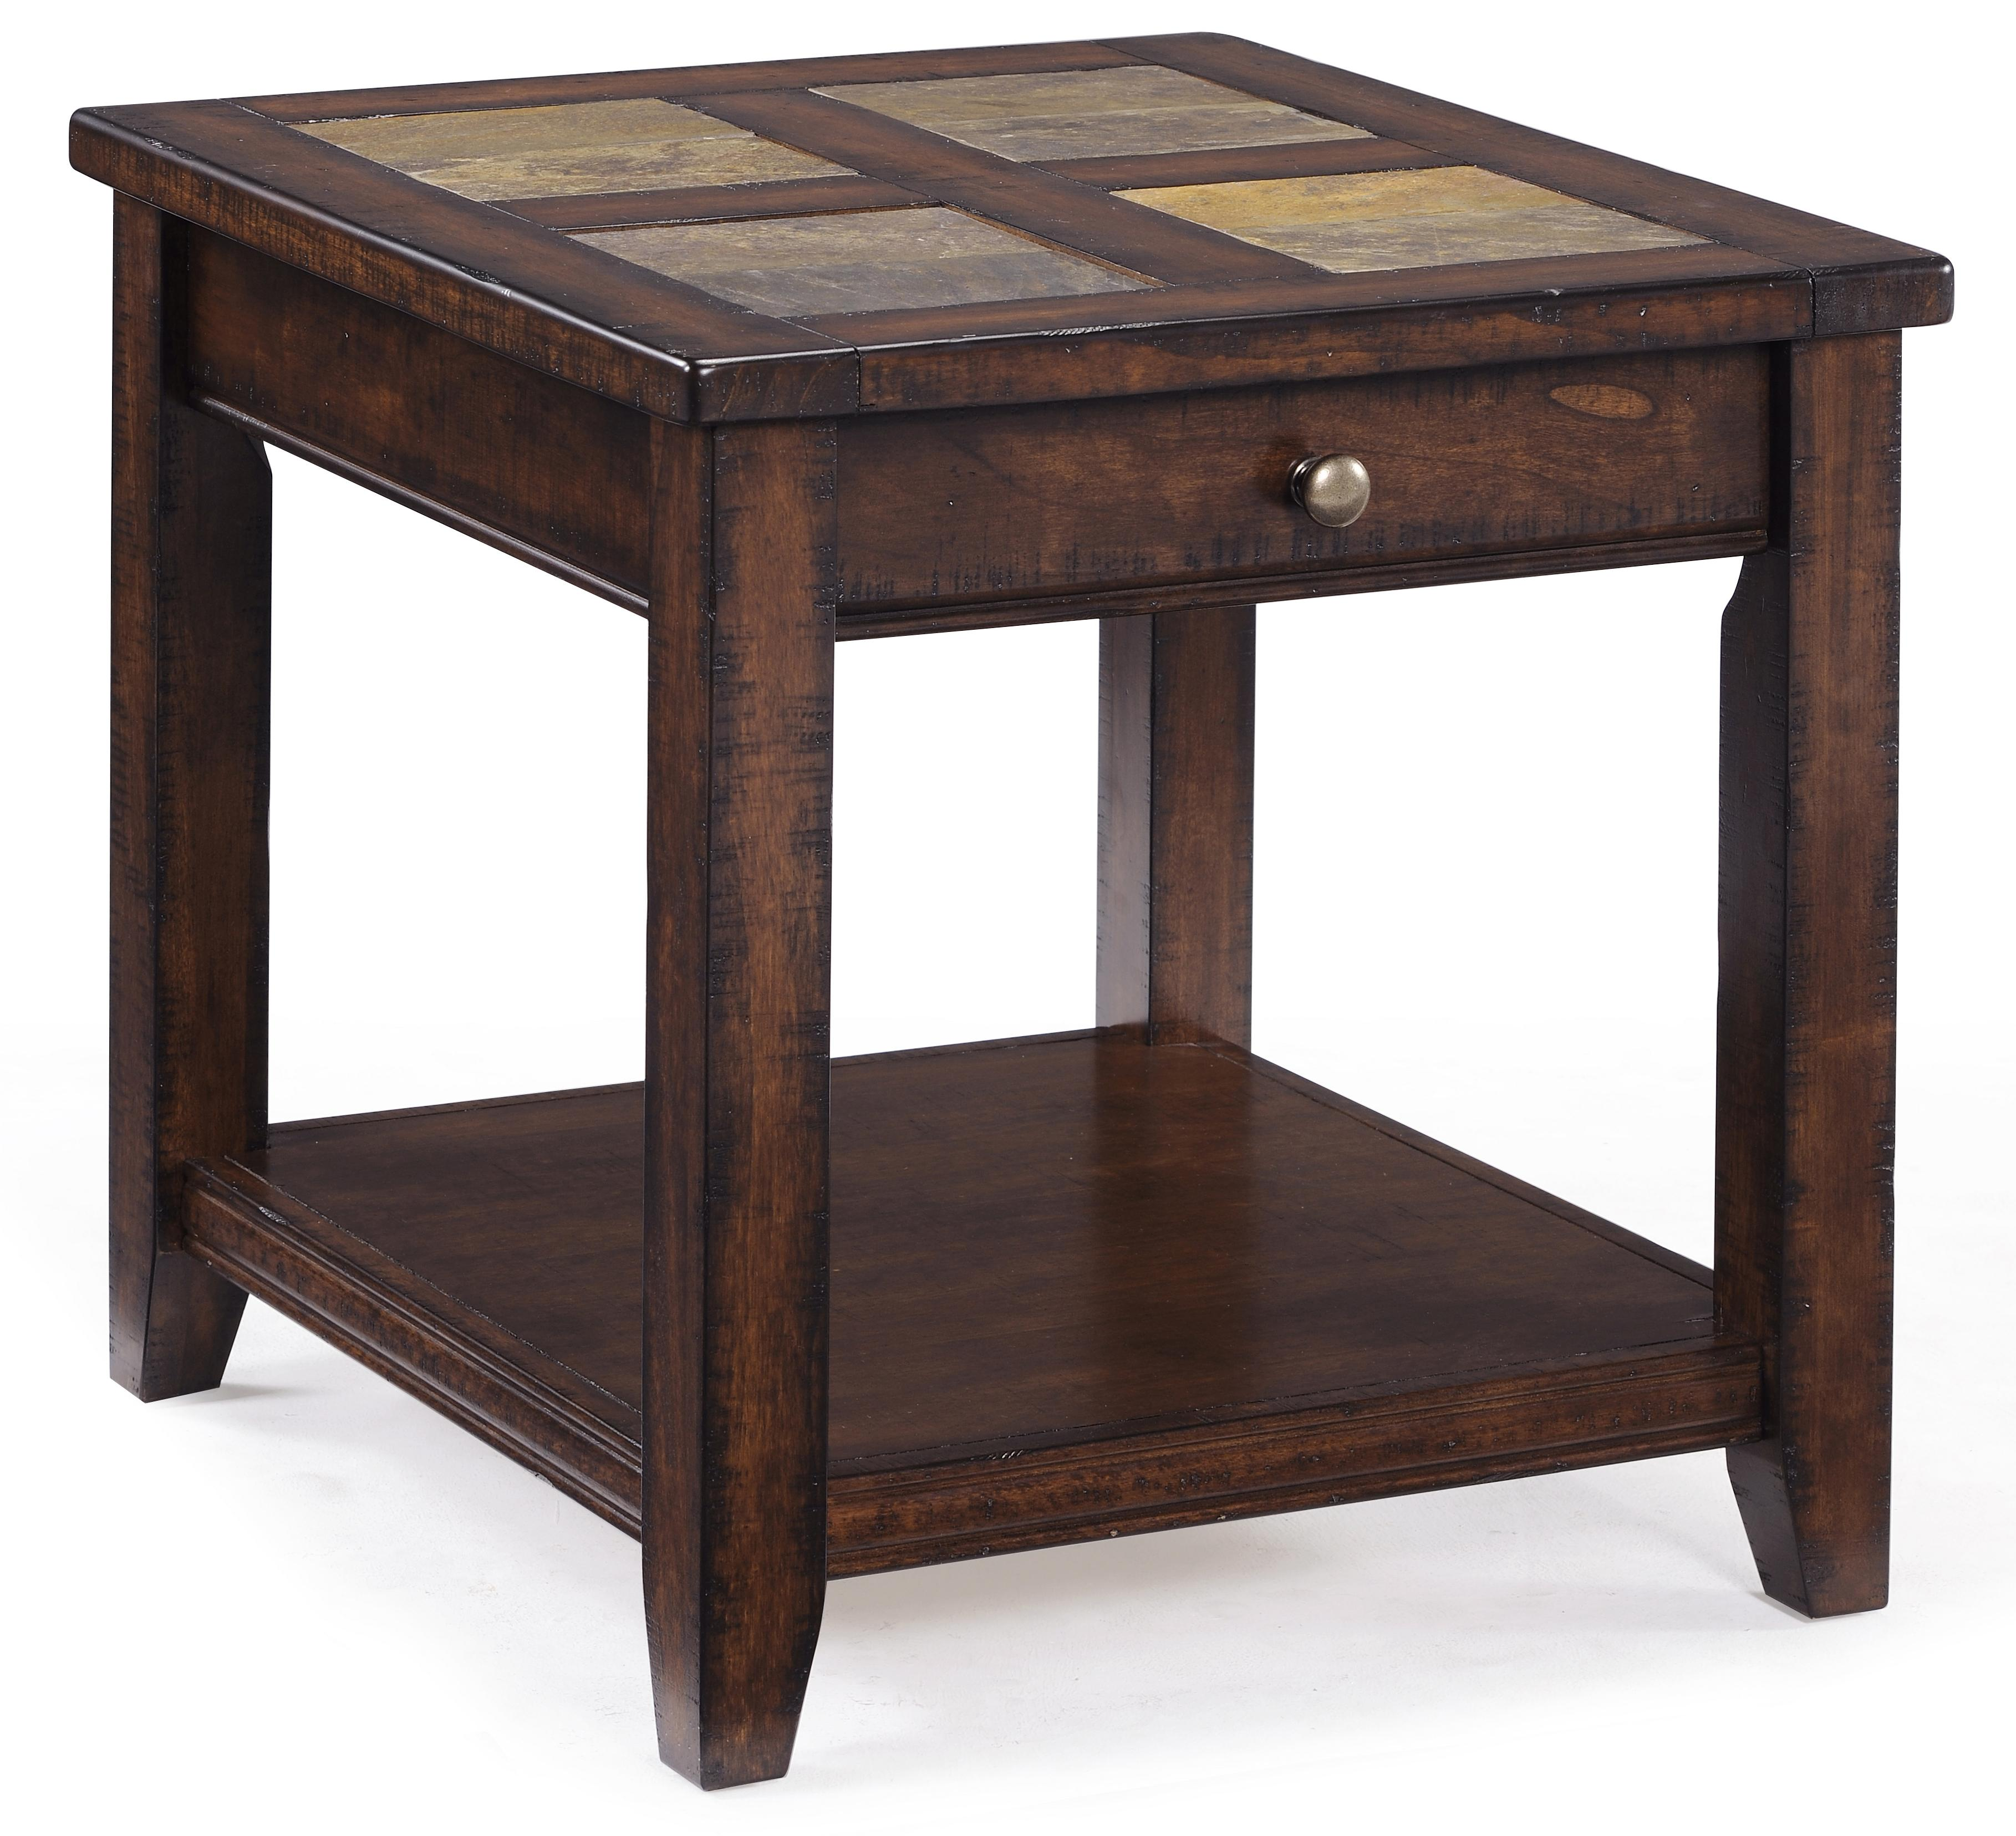 Big Cedar End Table by Magnussen Home at Crowley Furniture & Mattress